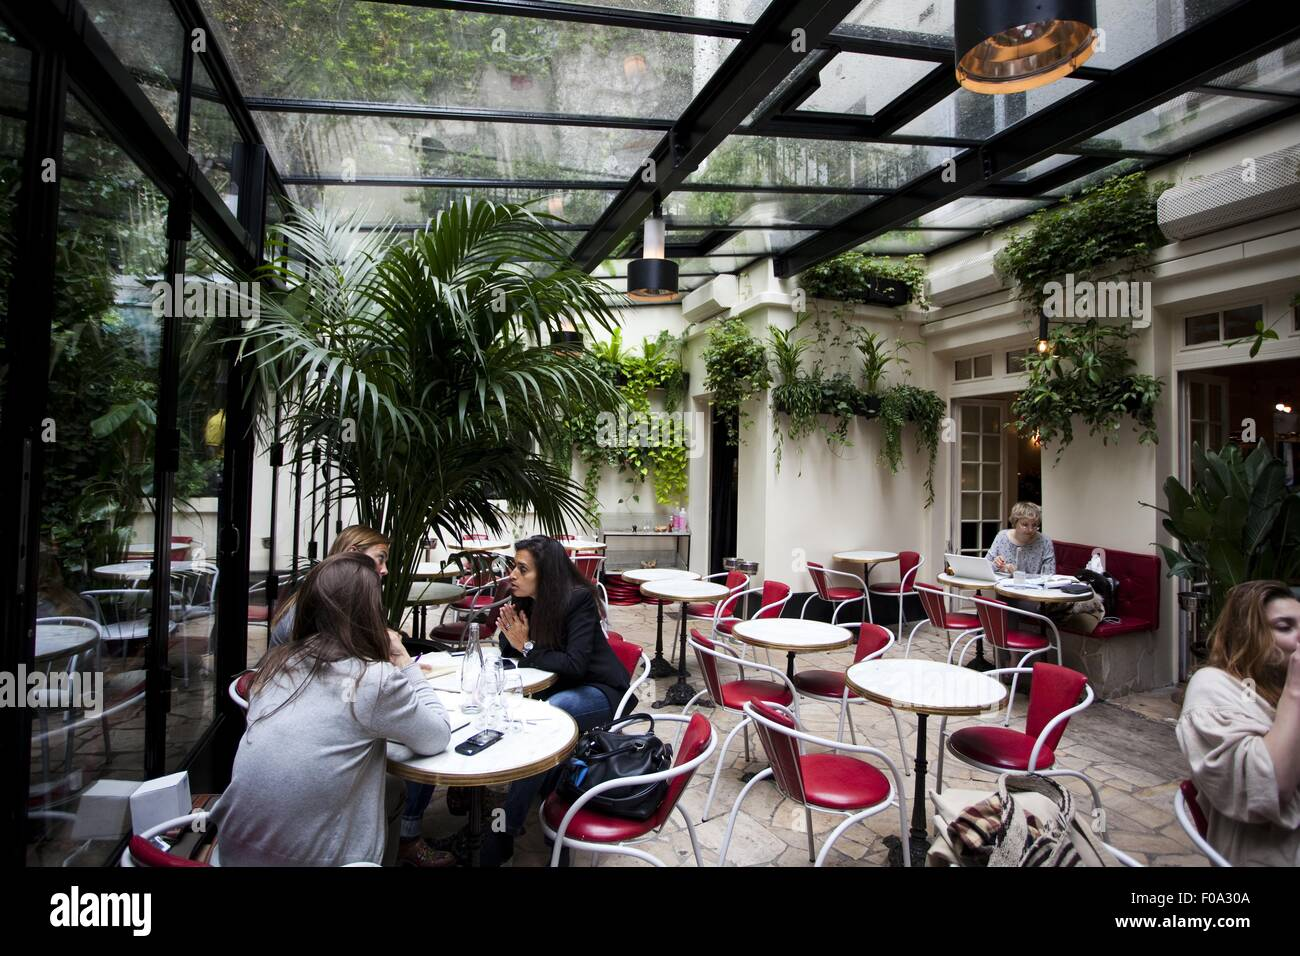 People Sitting In Patio Of Hotel Amour Paris France Stock Photo